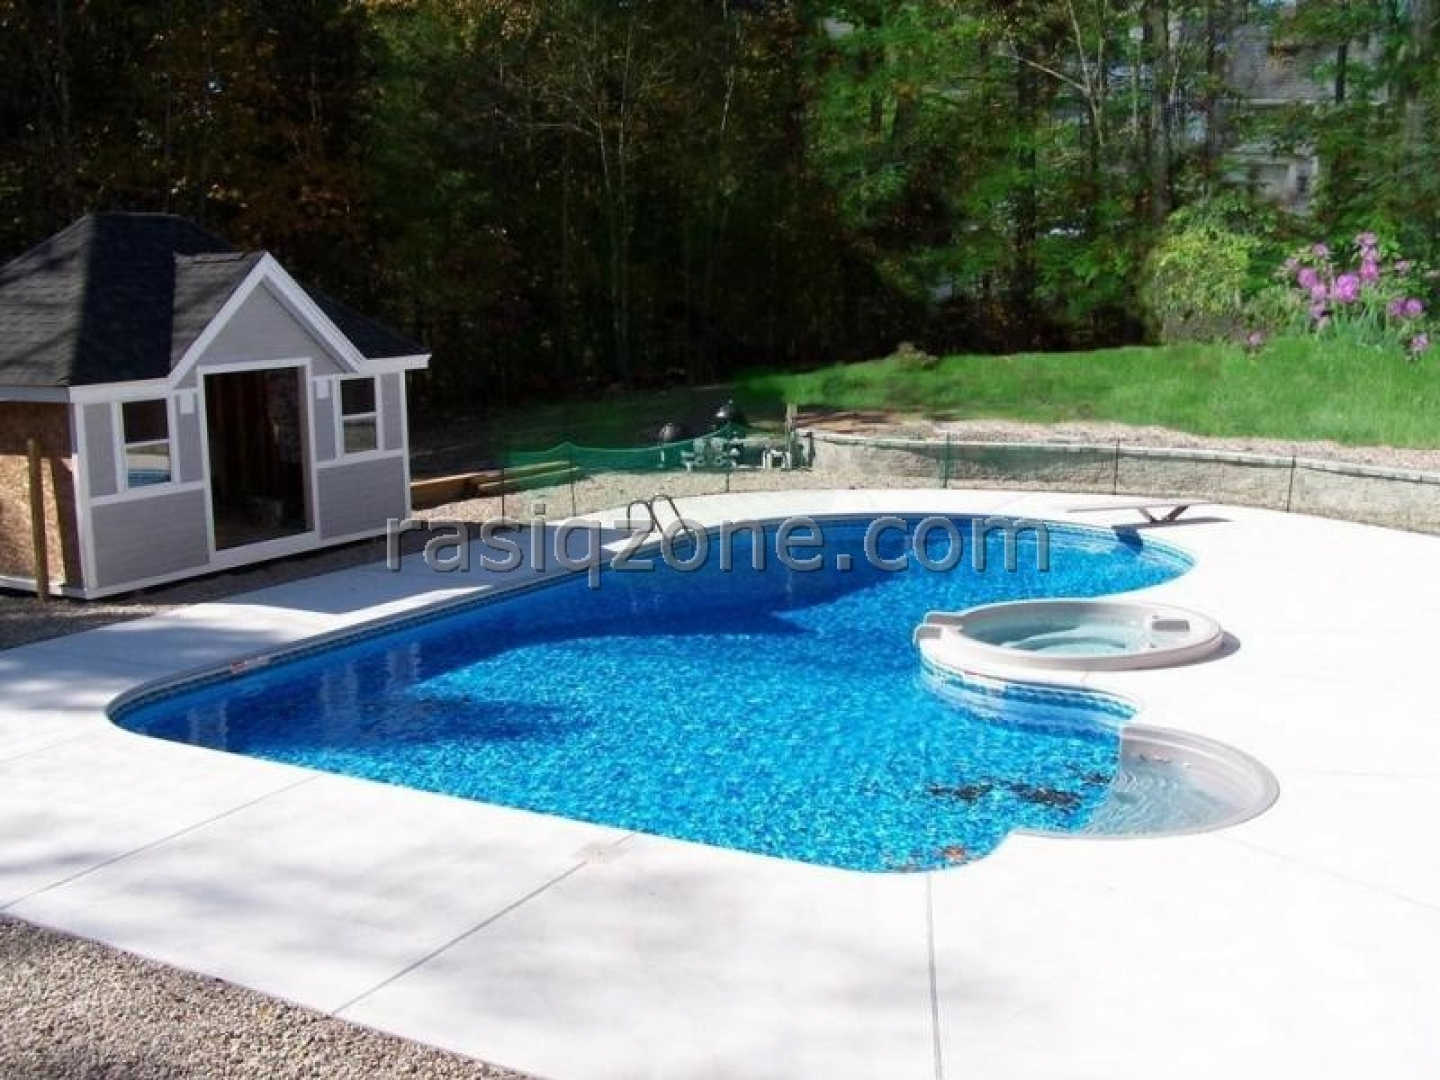 Awesome Swimming Pool Cabana Ideas | Backyard Pool Designs | Swimming Pool Costs